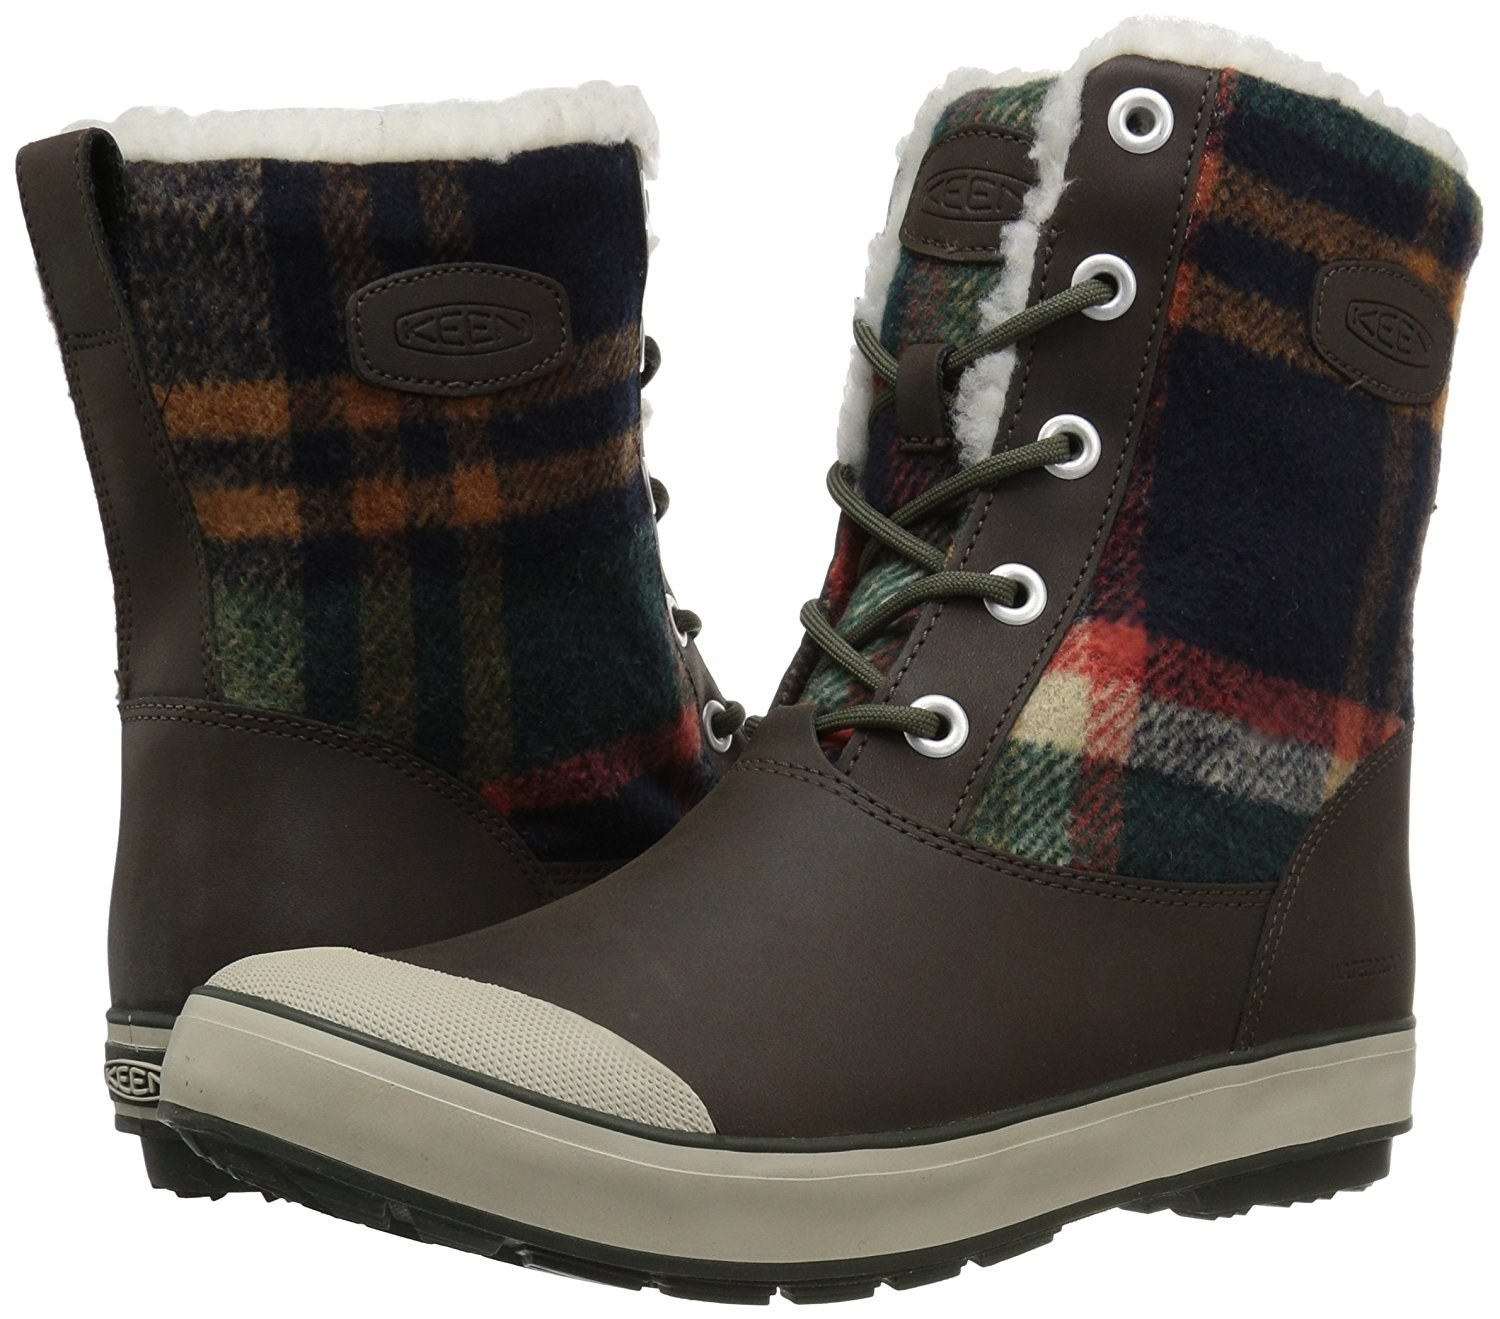 1876f671f81 21 Of The Best Winter Boots And Snow Boots You Can Get On Amazon